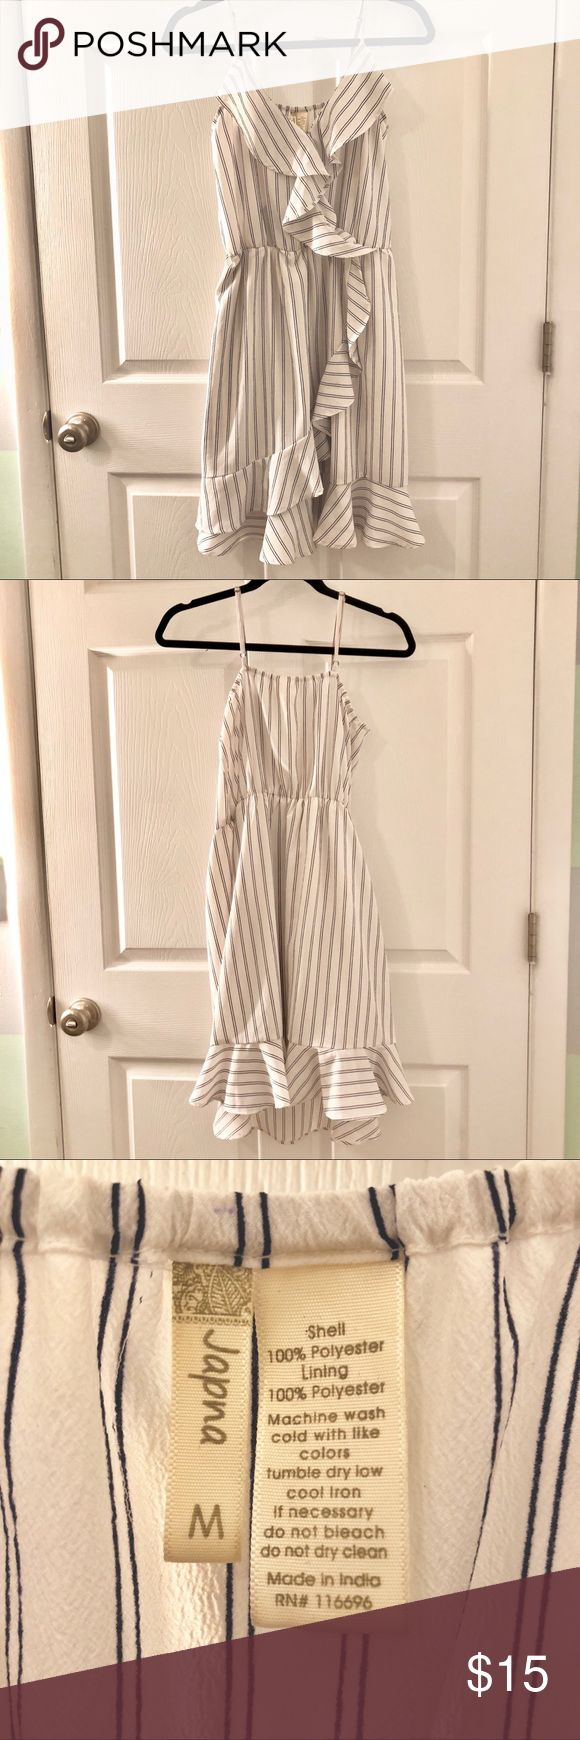 White & Navy striped dress Dress in white with navy stripes and adorable ruffle details throughout. Used only once. Classic dress. ✨Bundles of 3+ items get 15% off! Japna Dresses